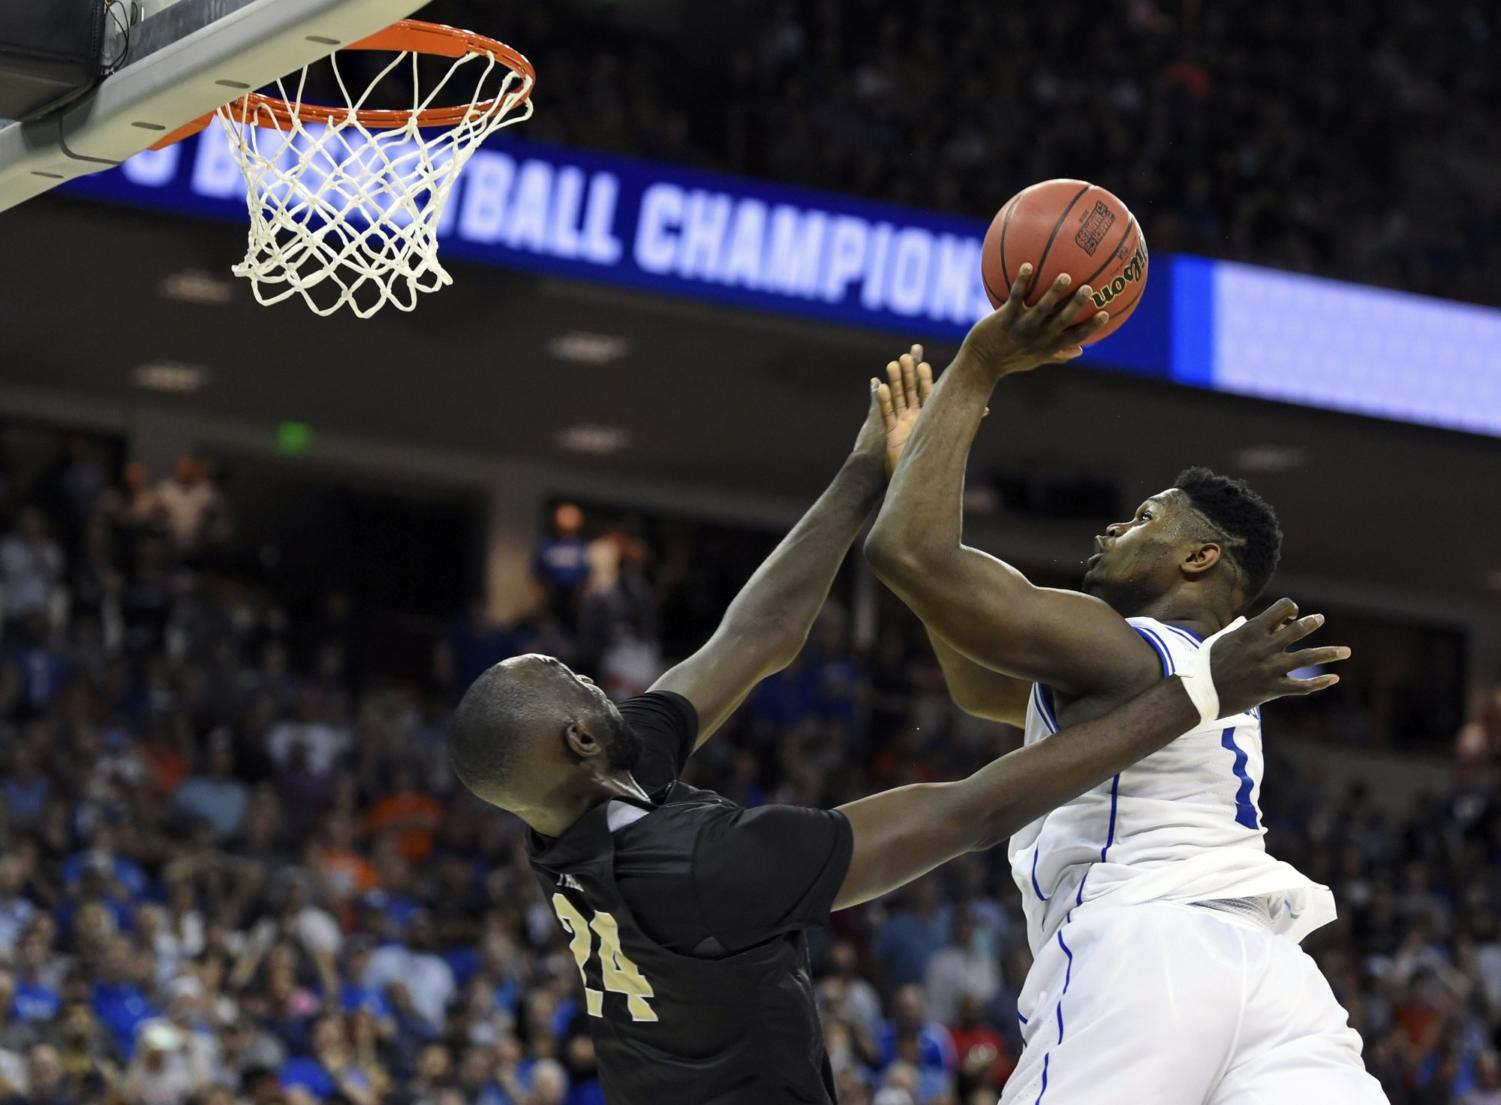 Duke's Zion Williamson  and UCF's Tacko Fall battle it out in an epic March Madness game.